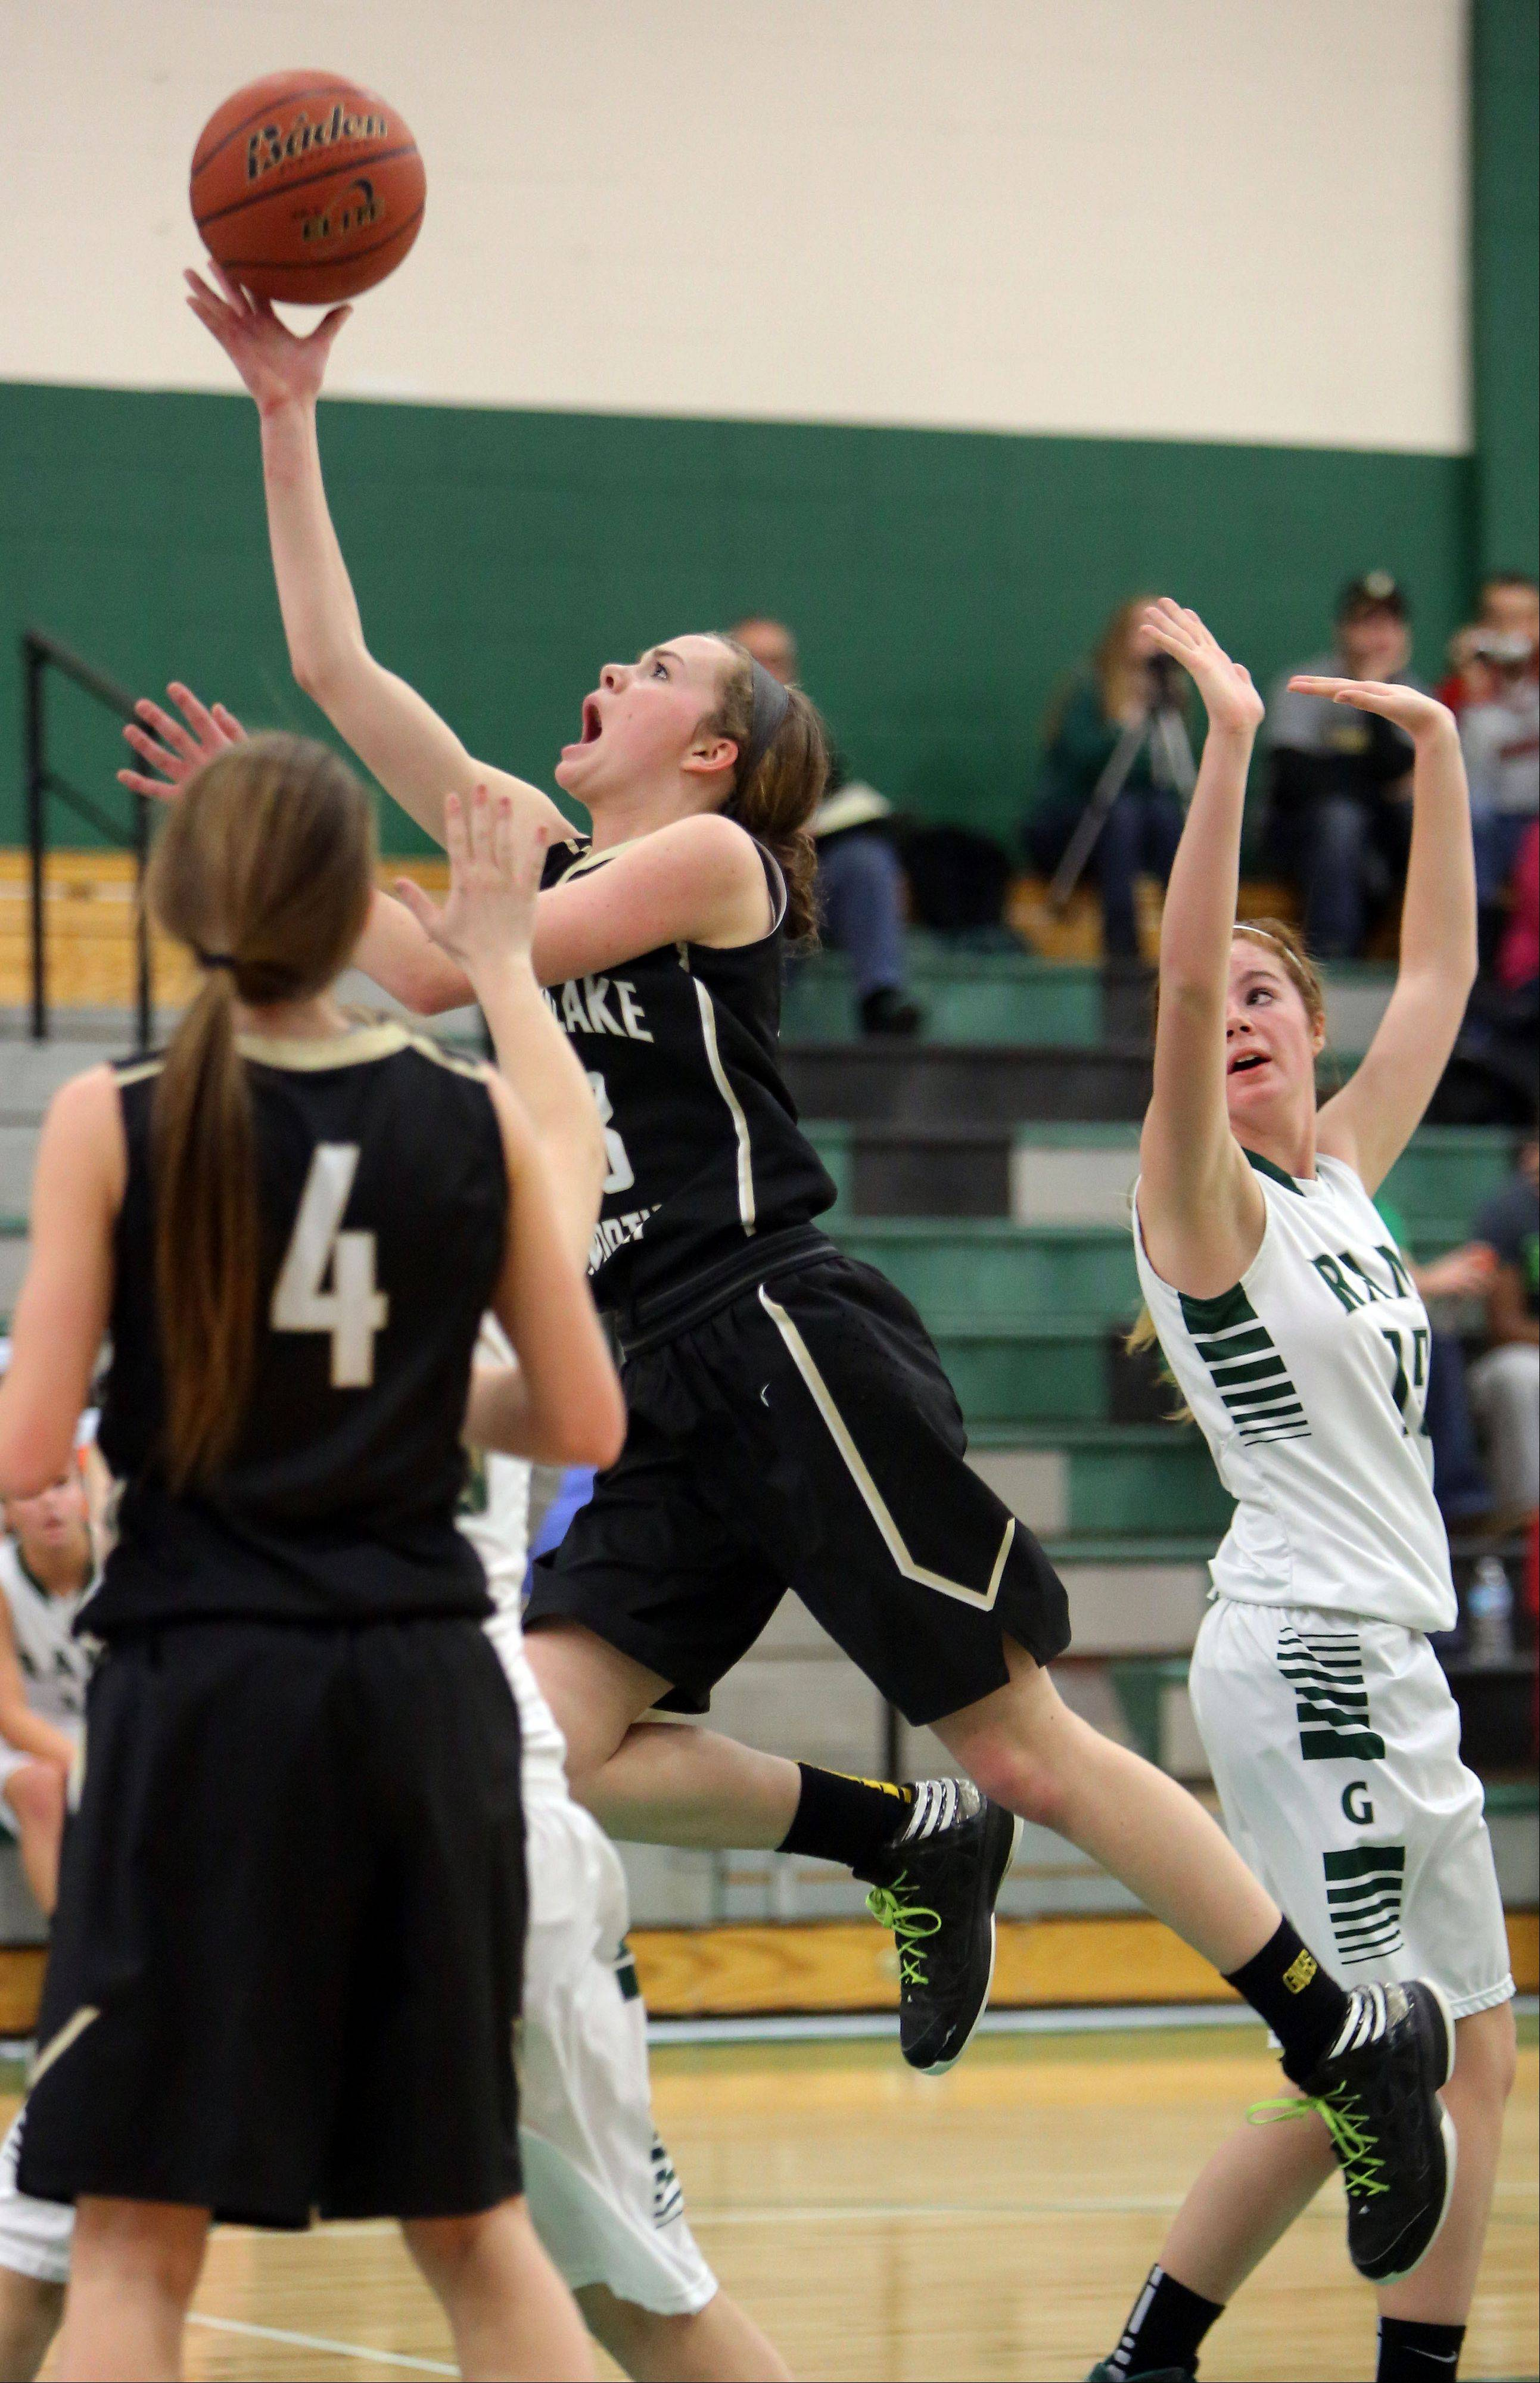 Grayslake North's Sidney Lovitsch, left, drives past Graylake Central's Lauren Spalding on Wednesday at Grayslake Central.